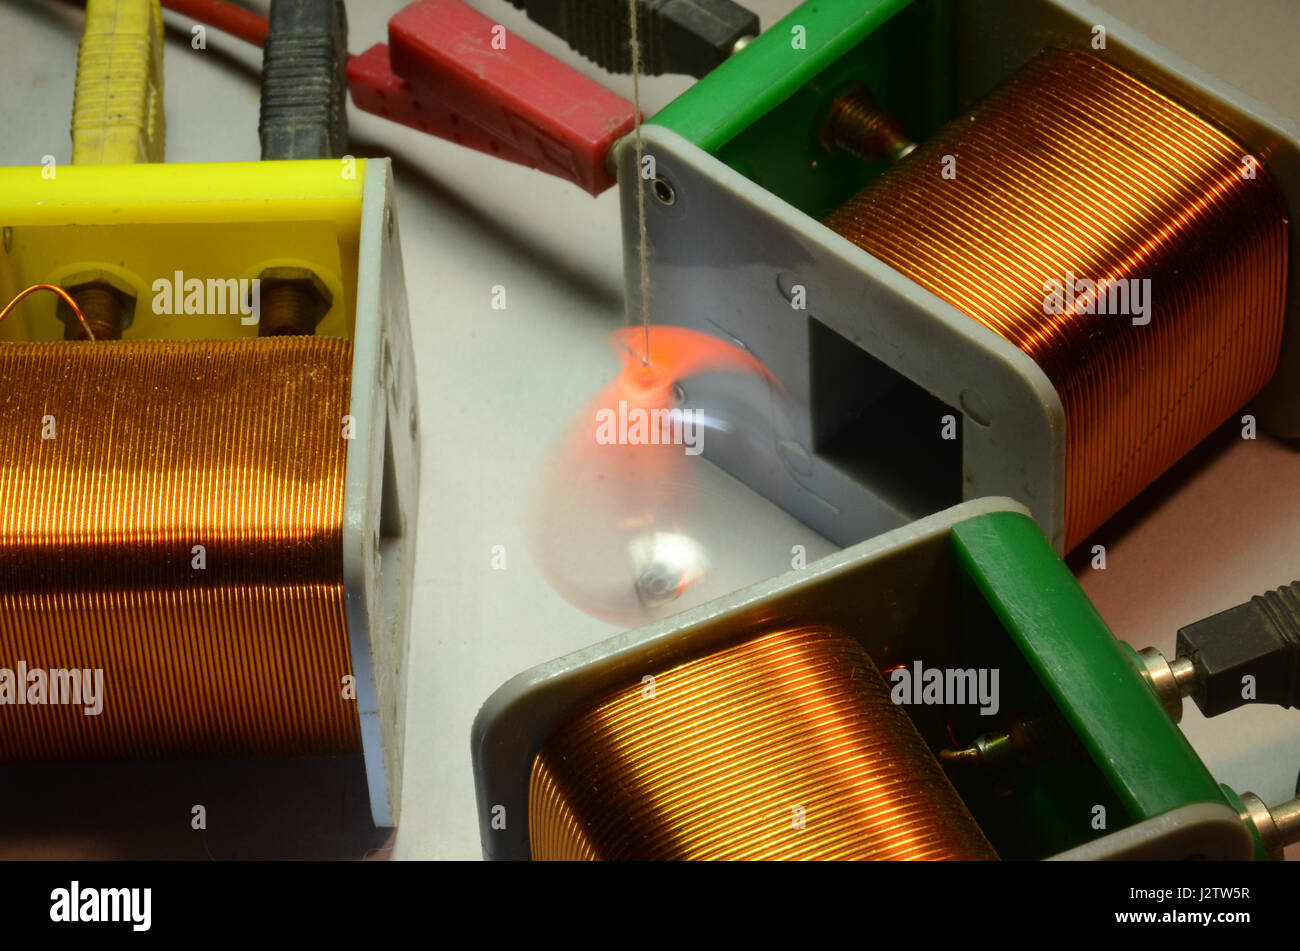 Demonstration of how a three-phase asynchronous motor works. The orange metal ring is influenced by the rotating - Stock Image